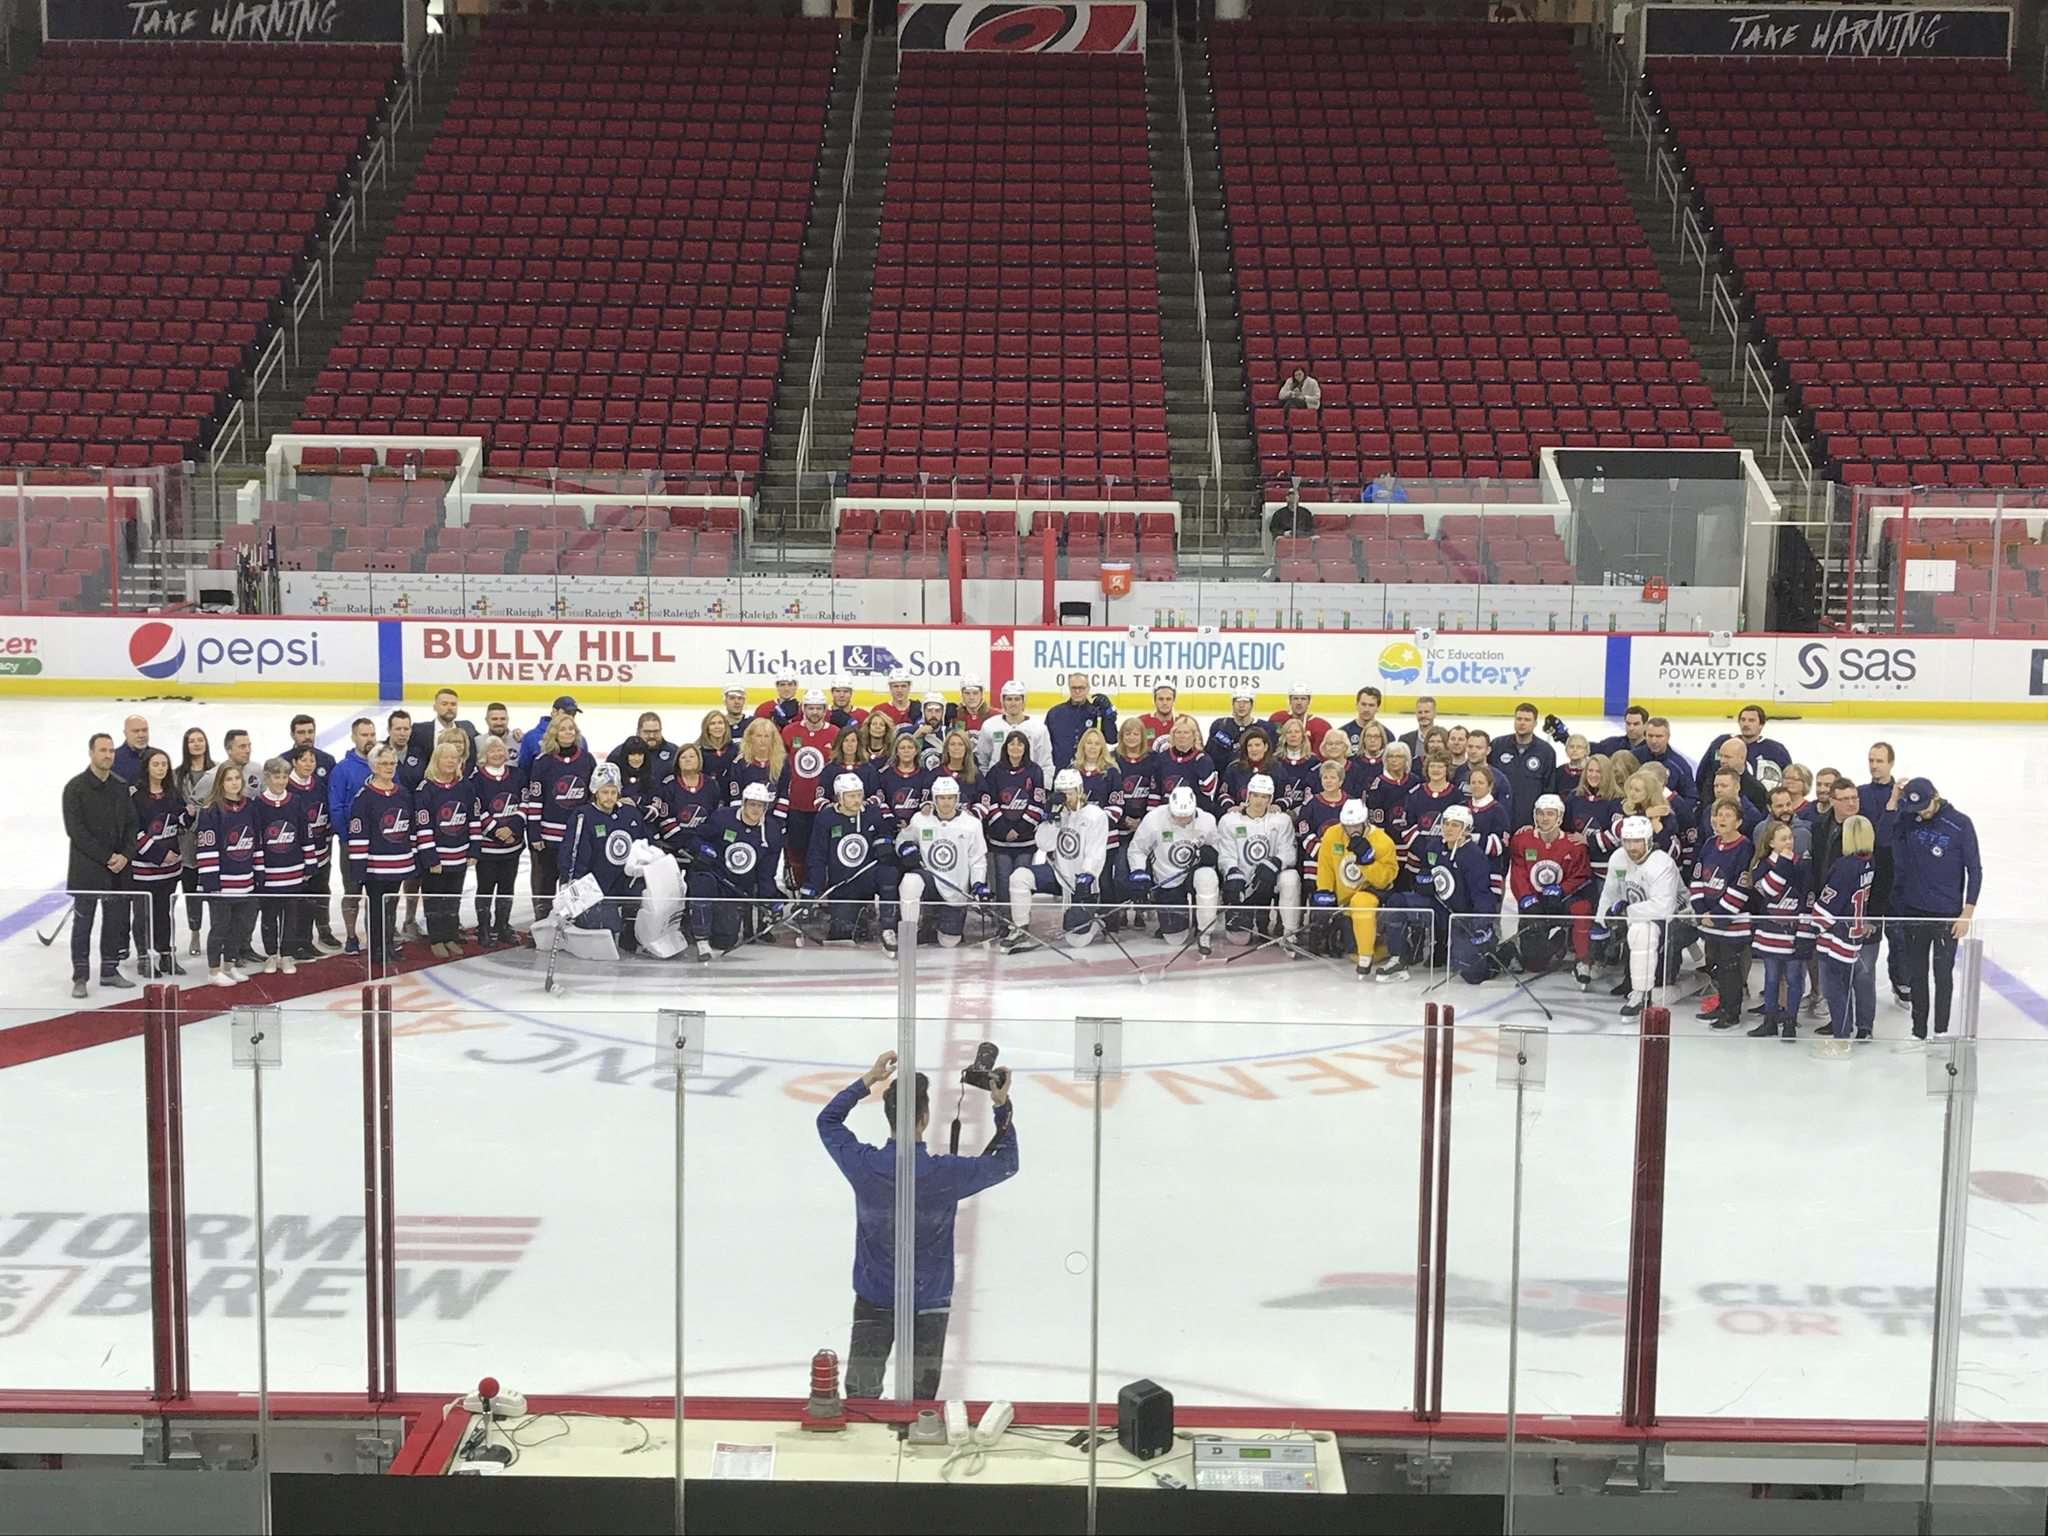 All the moms were brought out for a group photo before practice got underway Monday in Raleigh. (Mike McIntyre / Winnipeg Free Press)